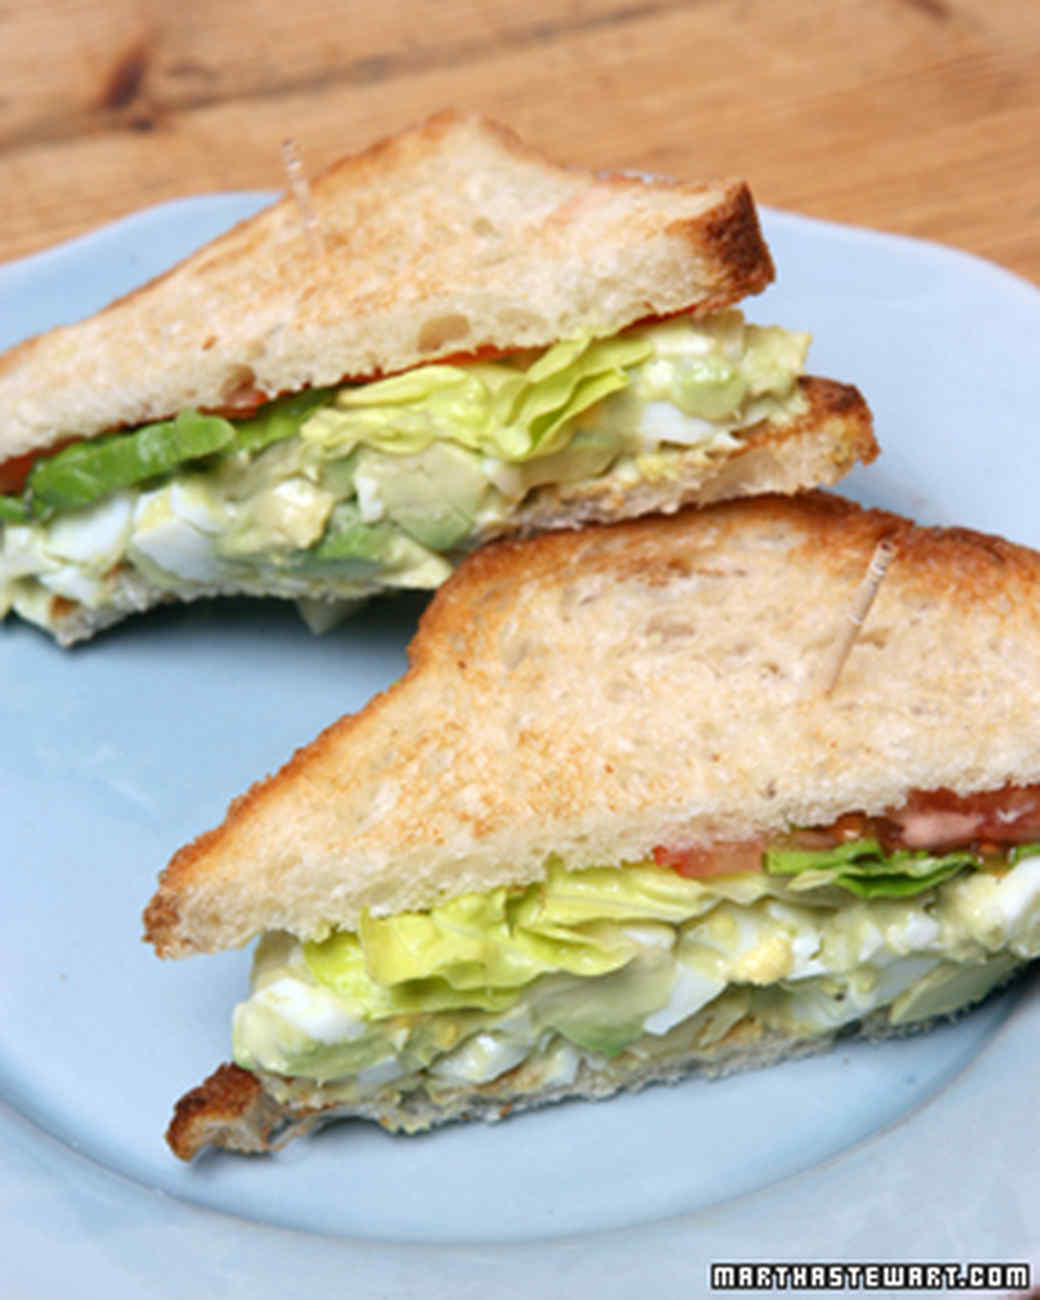 Martha's Favorite Egg Salad Sandwich Recipe & Video ...